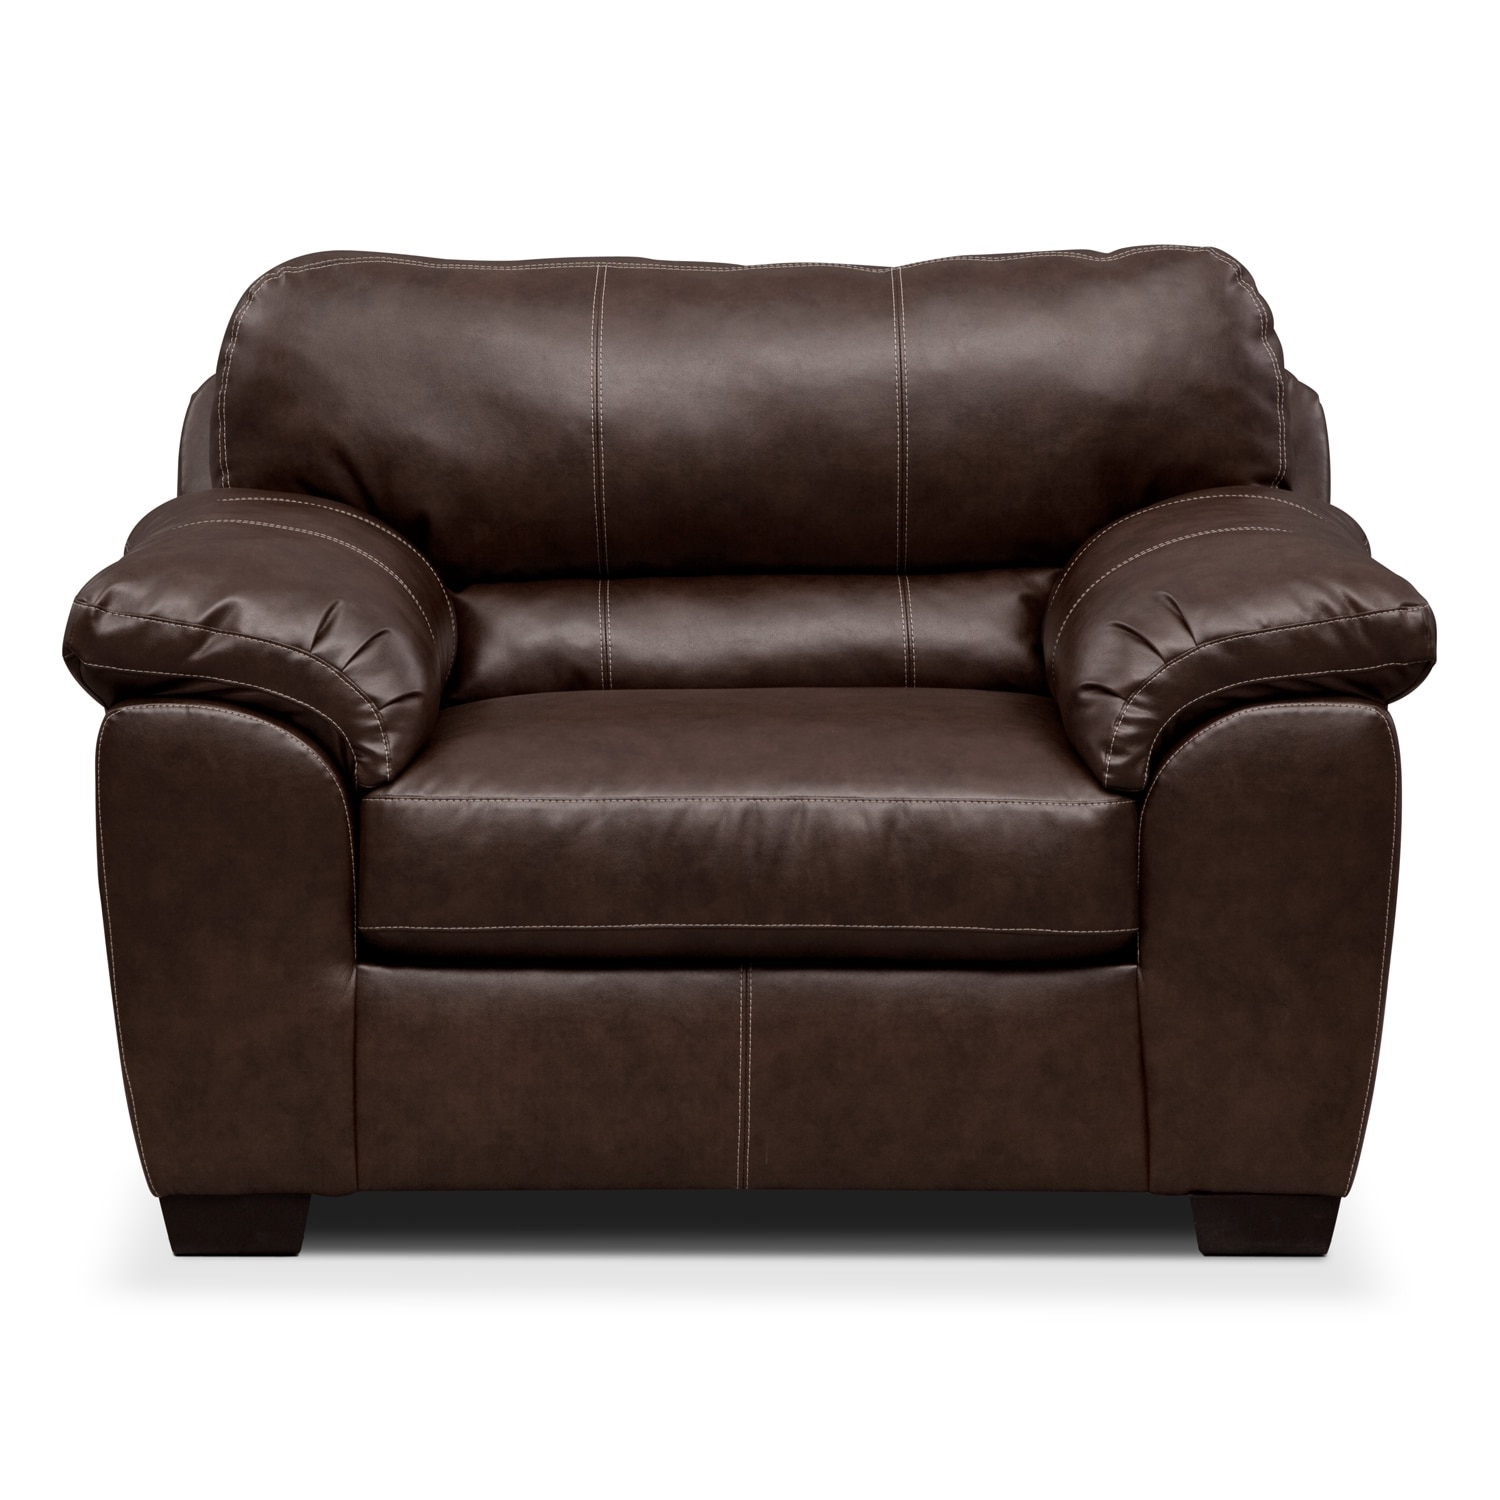 Colton II Leather Chair and a Half - Value City Furniture